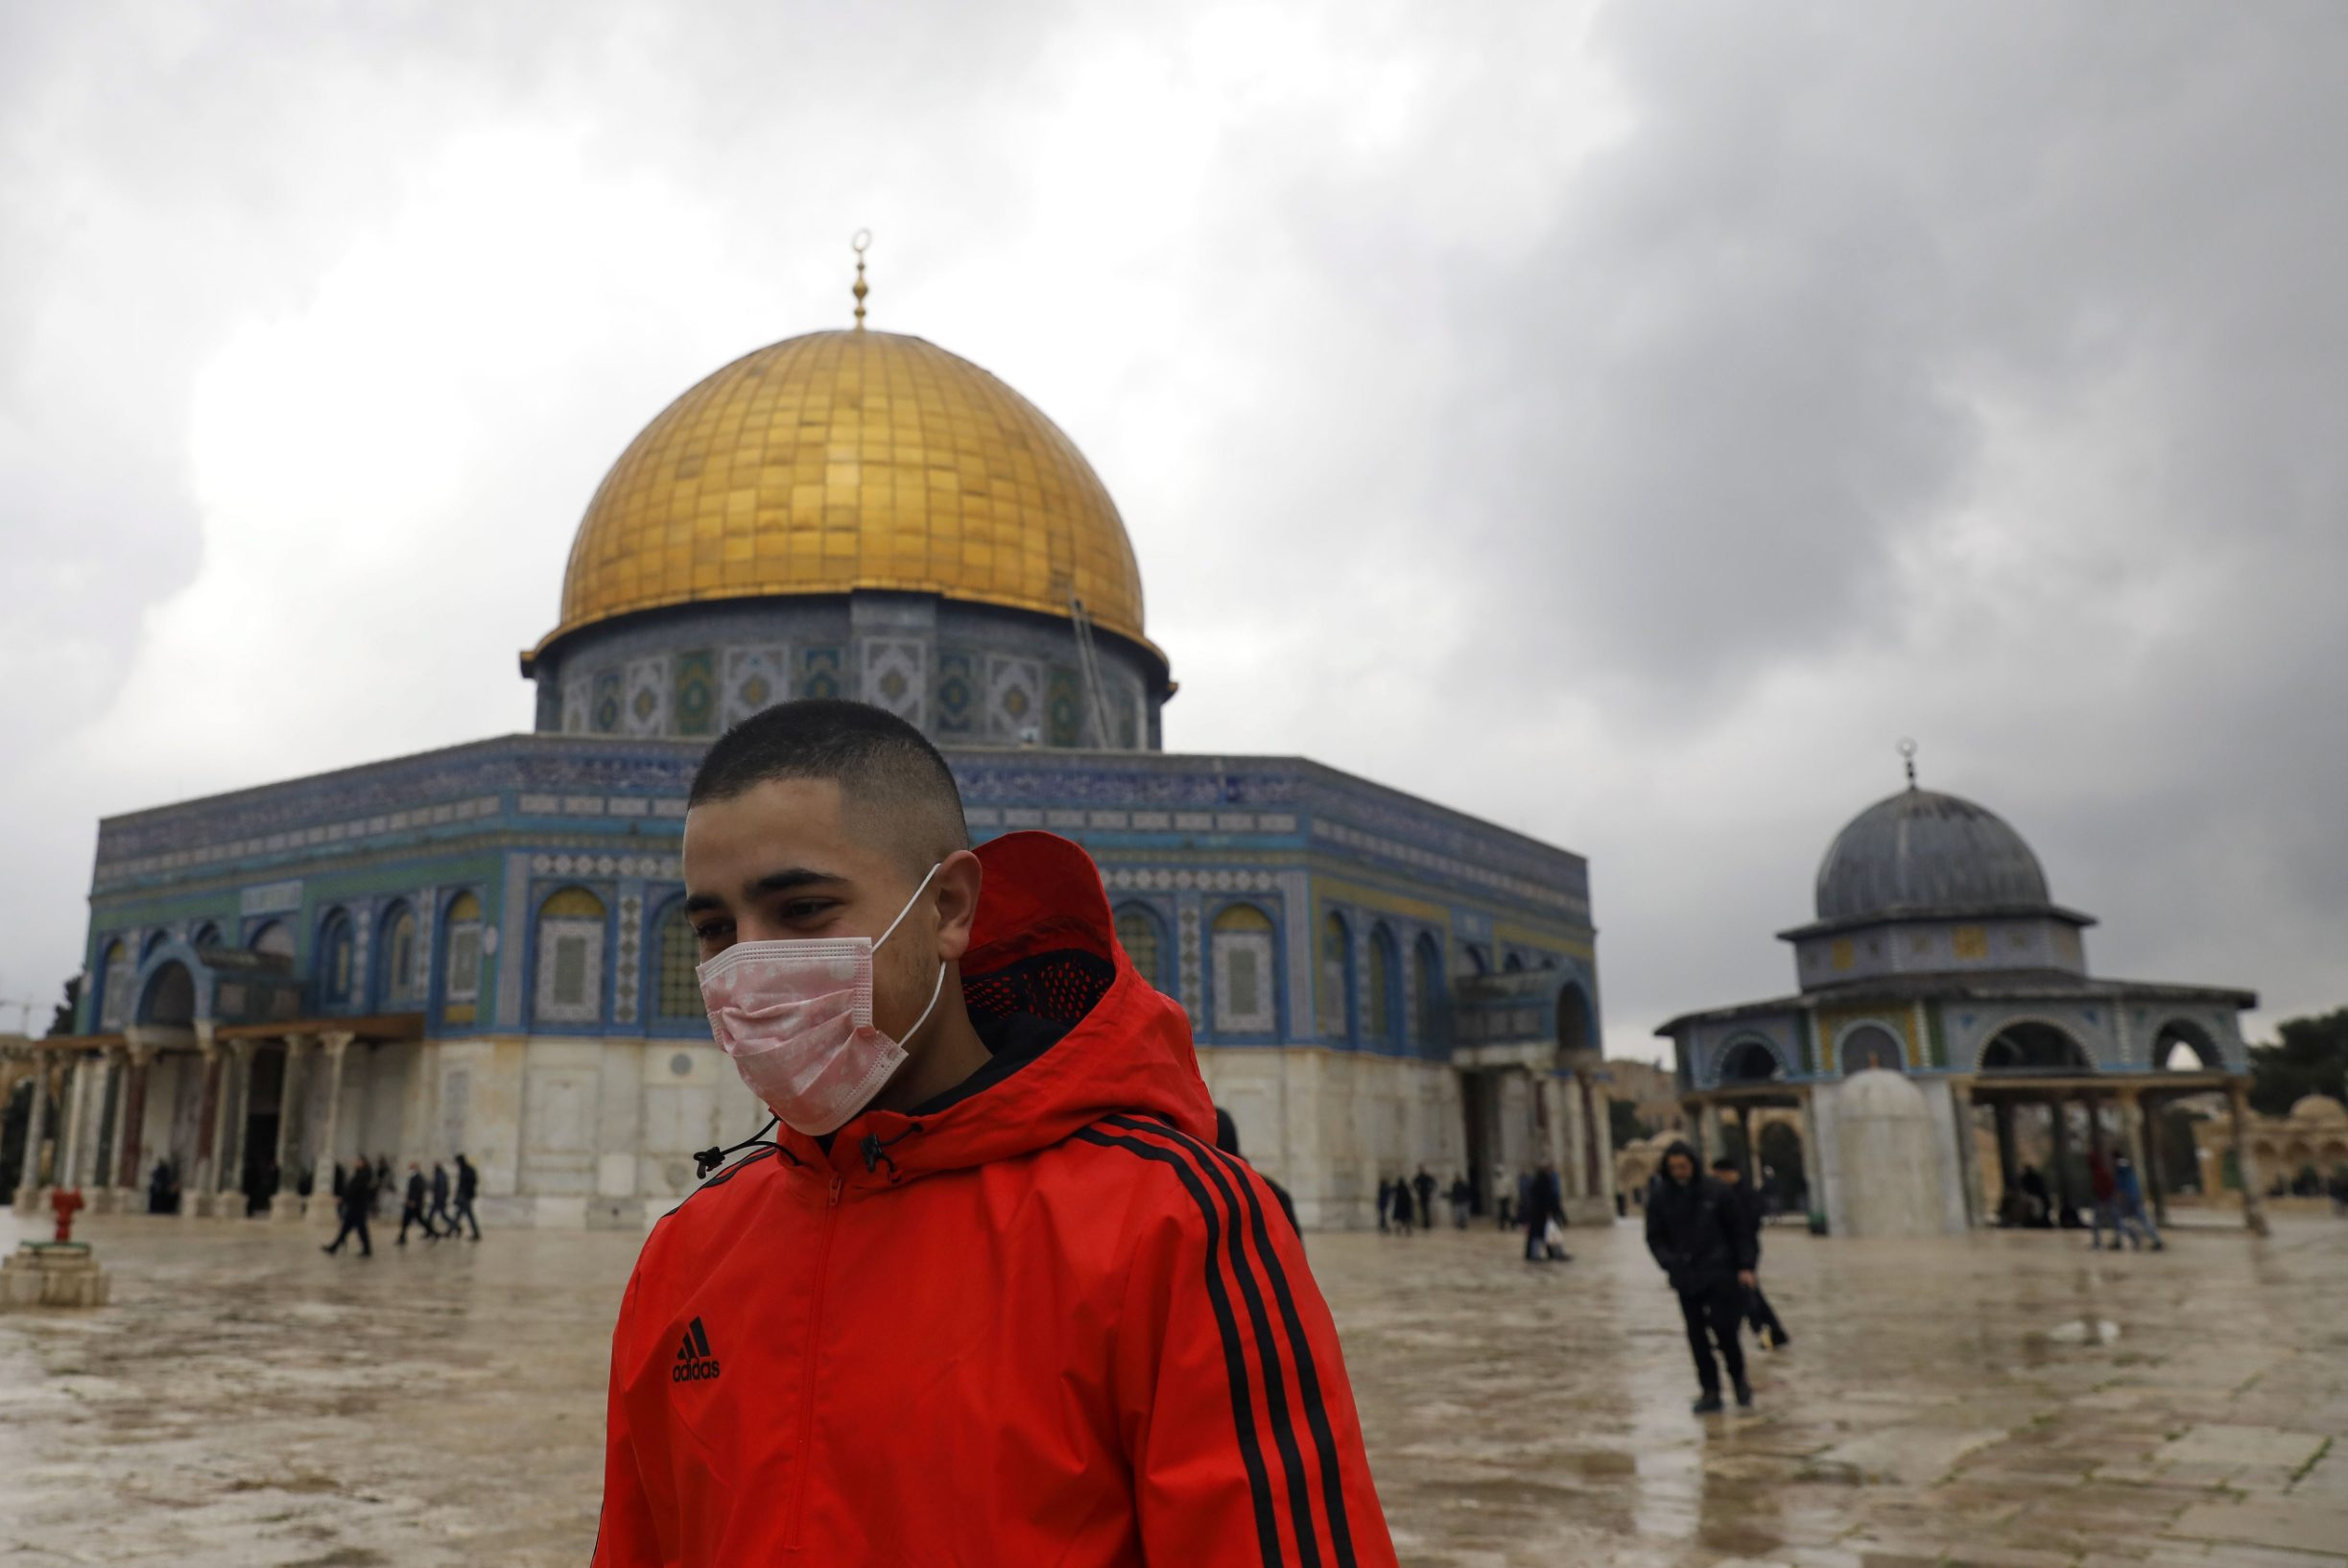 (FILES) In this file photo taken on March 06, 2020 A young man wearing a protective mask as a measure of protection against the coronavirus COVID-19, walks in front of the Dome of the Rock mosque inside the al-Aqsa compound in the Old City of Jerusalem, ahead of the Friday prayers, on March 6, 2020. - The Jerusalem Al-Aqsa mosque compound will be closed to the public from March 23, the religious authority that administers Muslim holy sites in the city announced in a rare move aimed at combatting the novel coronavirus. In a statement, the Jordan Waqf said it would